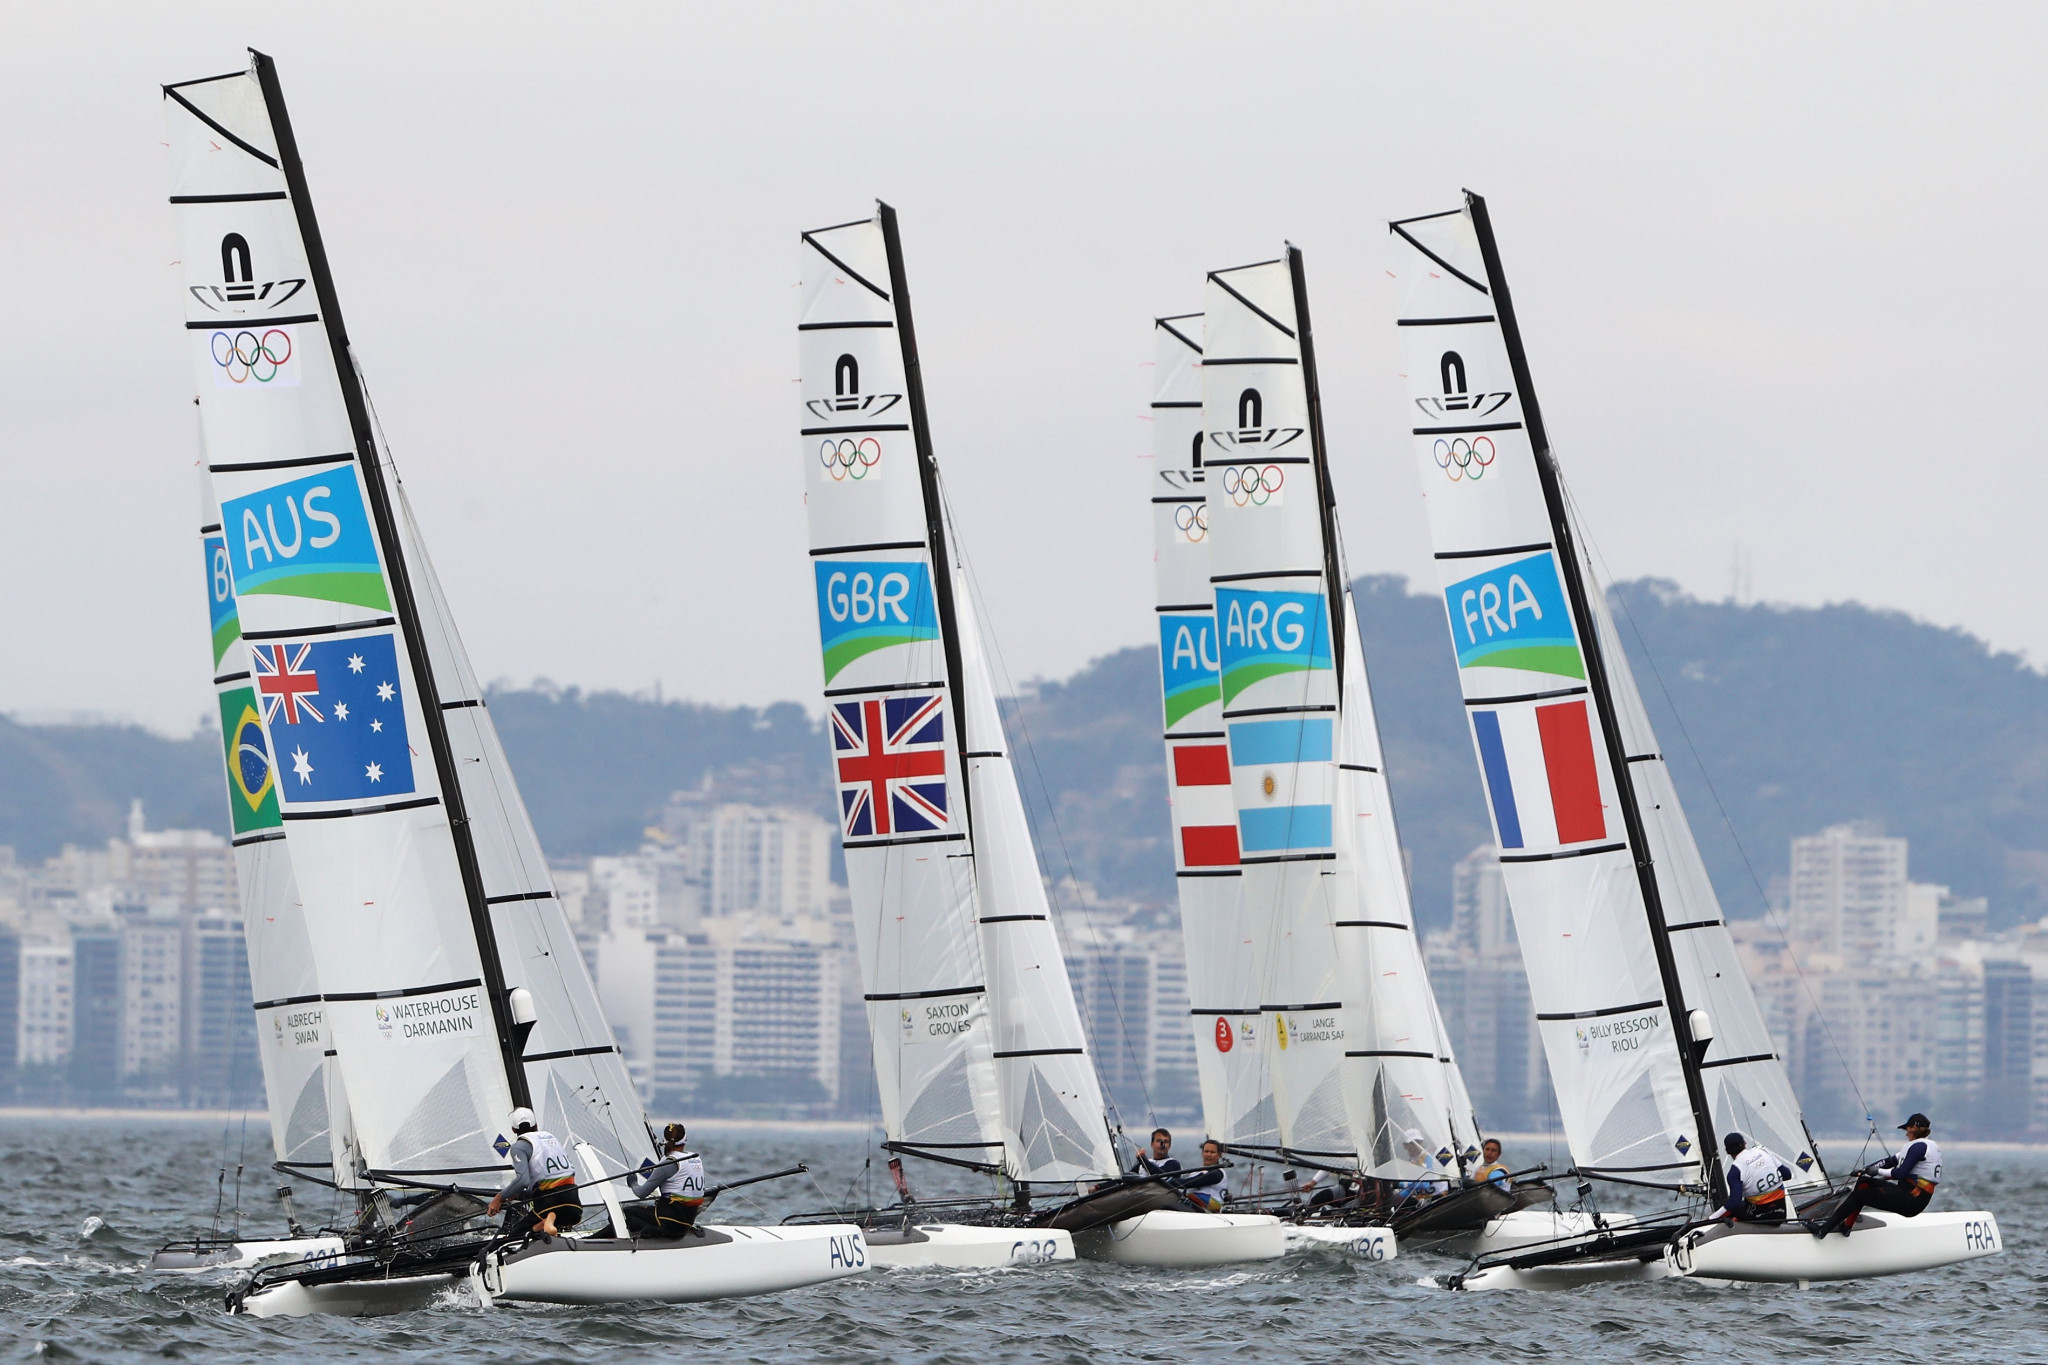 Italy's Tita and Banti dominate Nacra 17 class at Sailing World Cup Final in Marseille